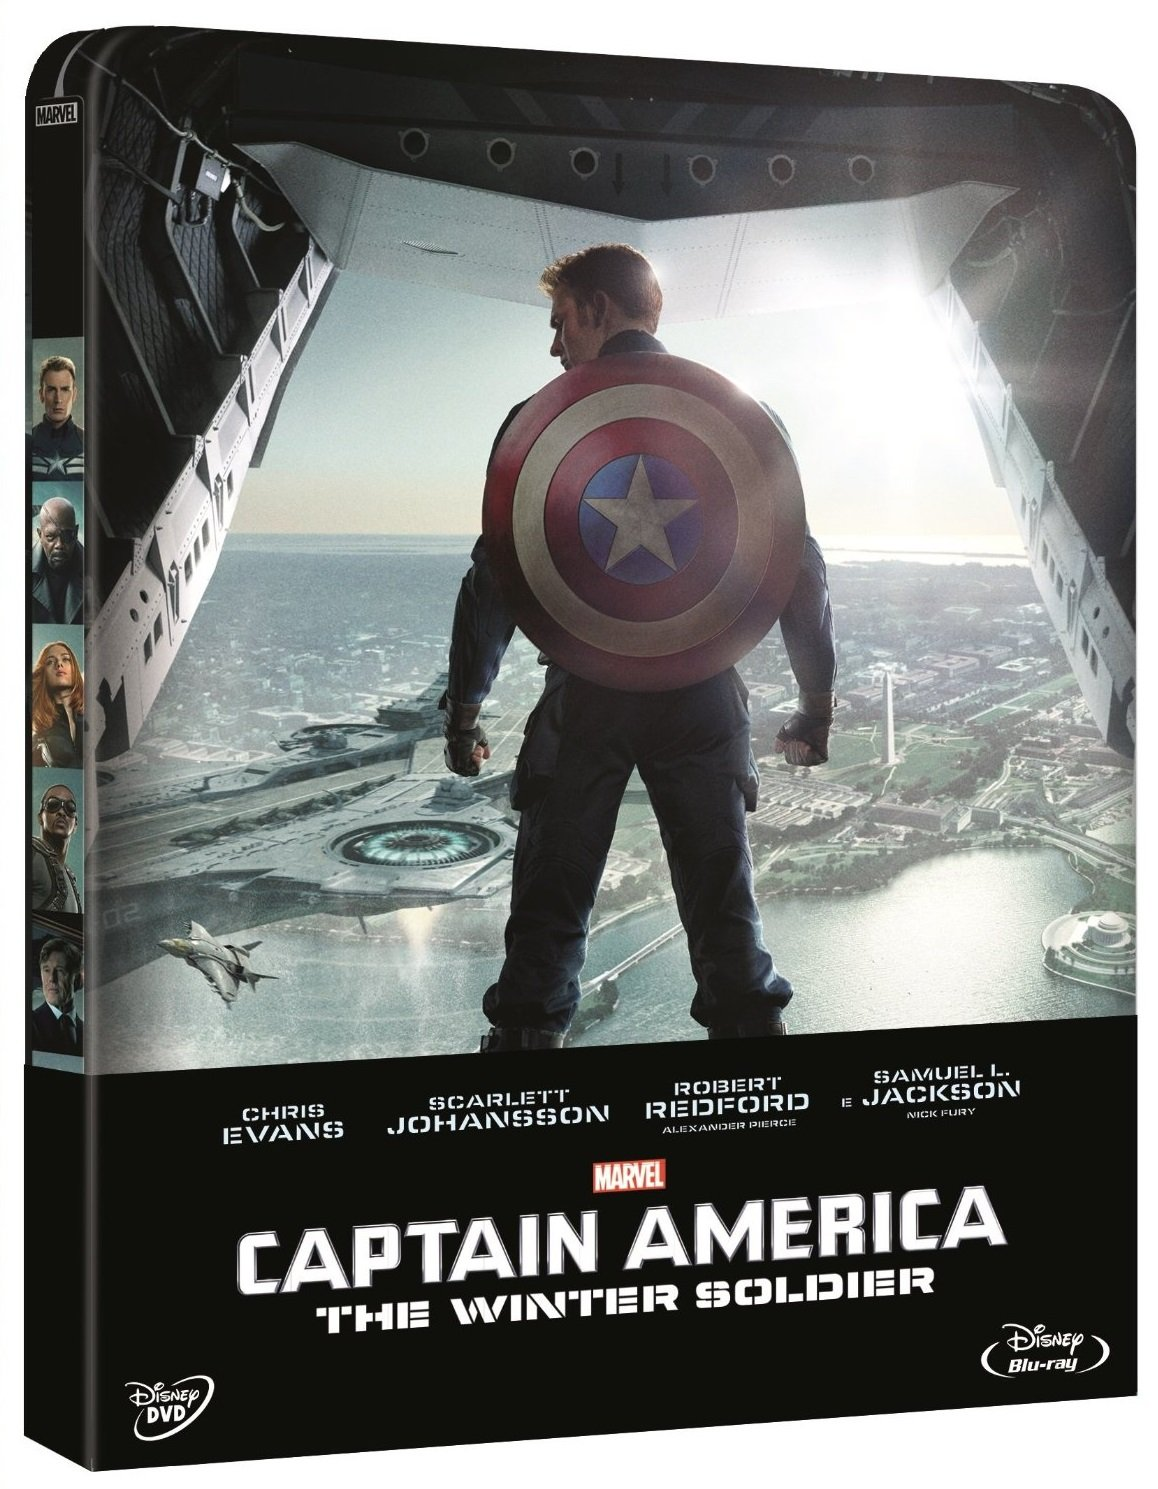 CAPTAIN AMERICA - The Winter Soldier Steelbook Blu-ray+Dvd ...